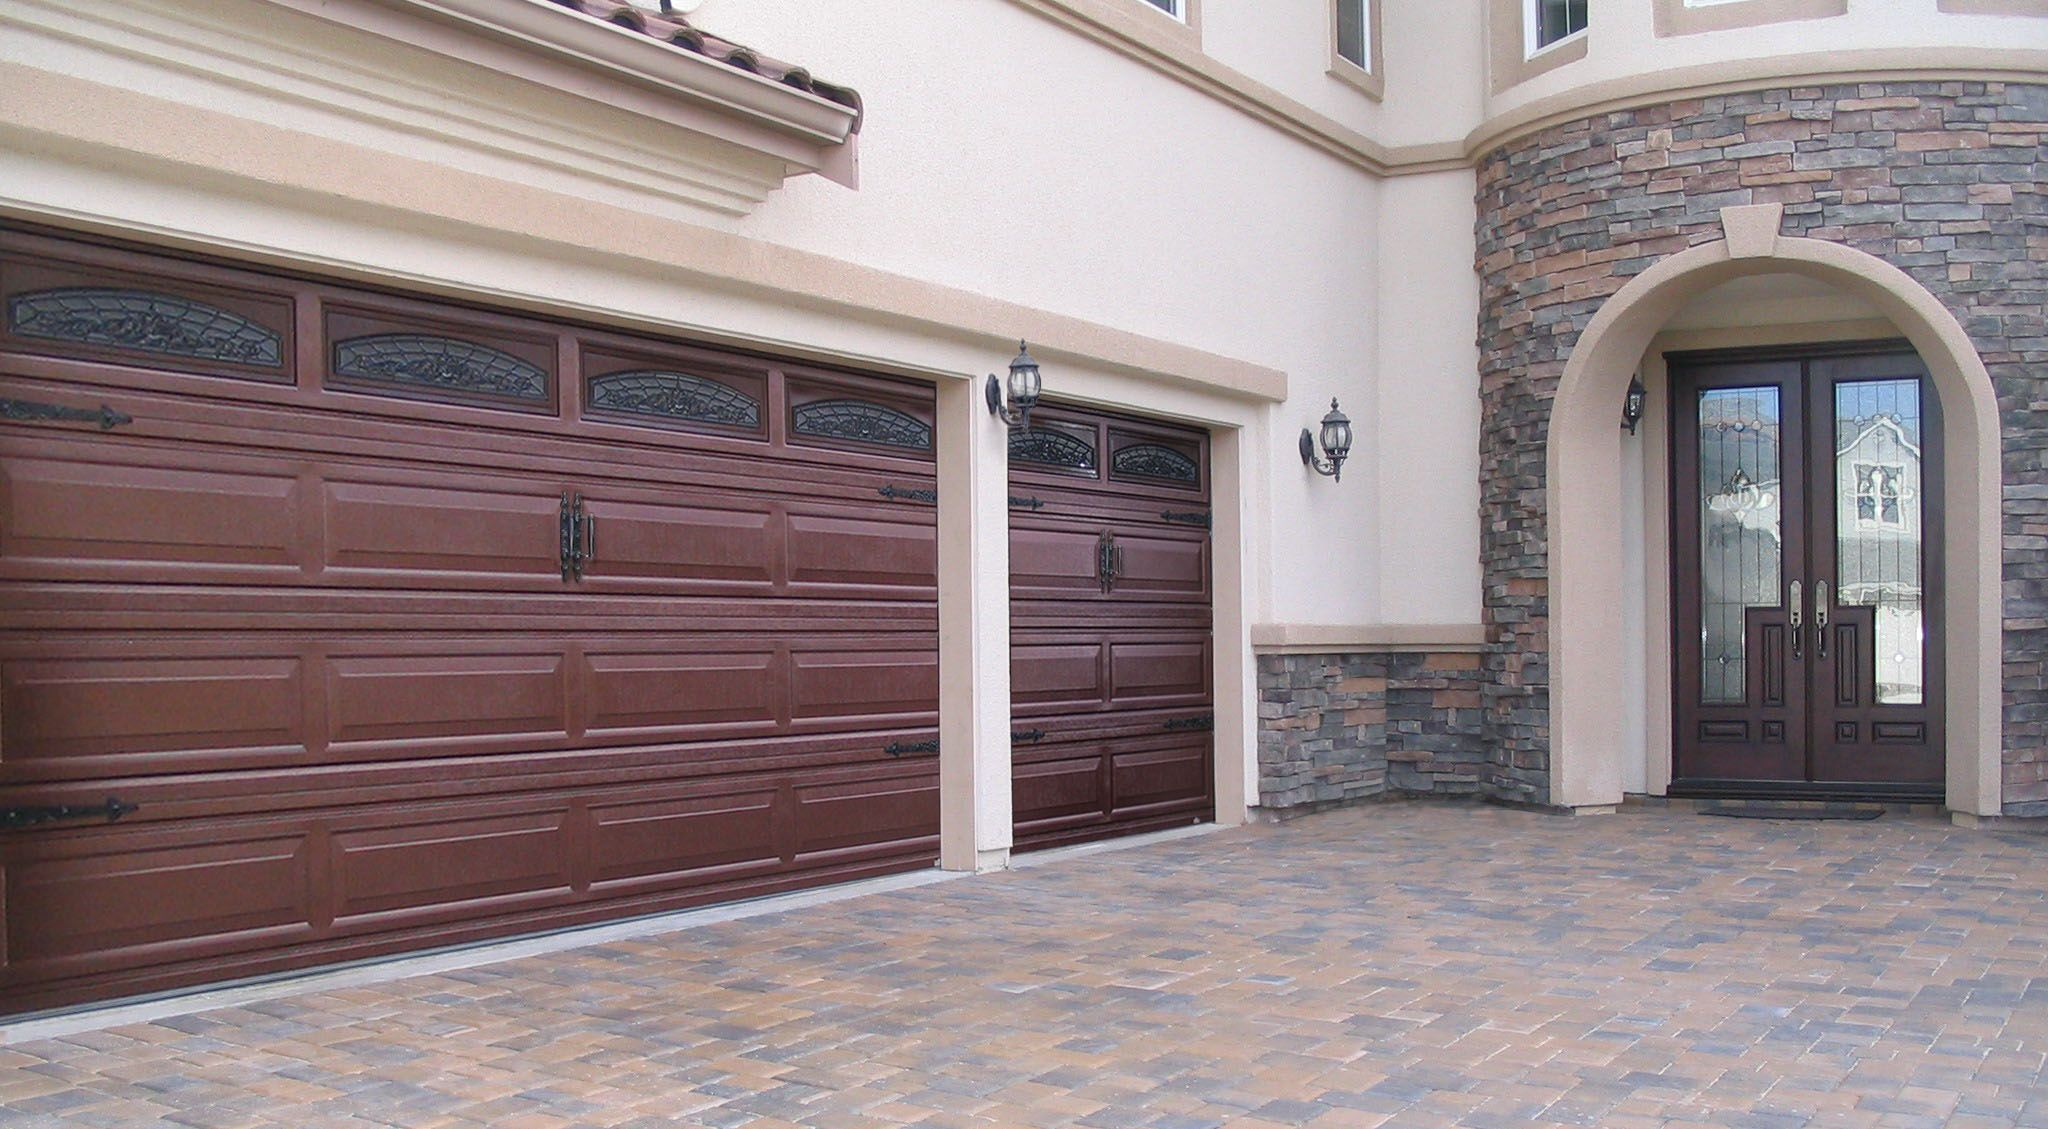 Is It Better To Match The Garage Door To The Front Door Or To The Trim